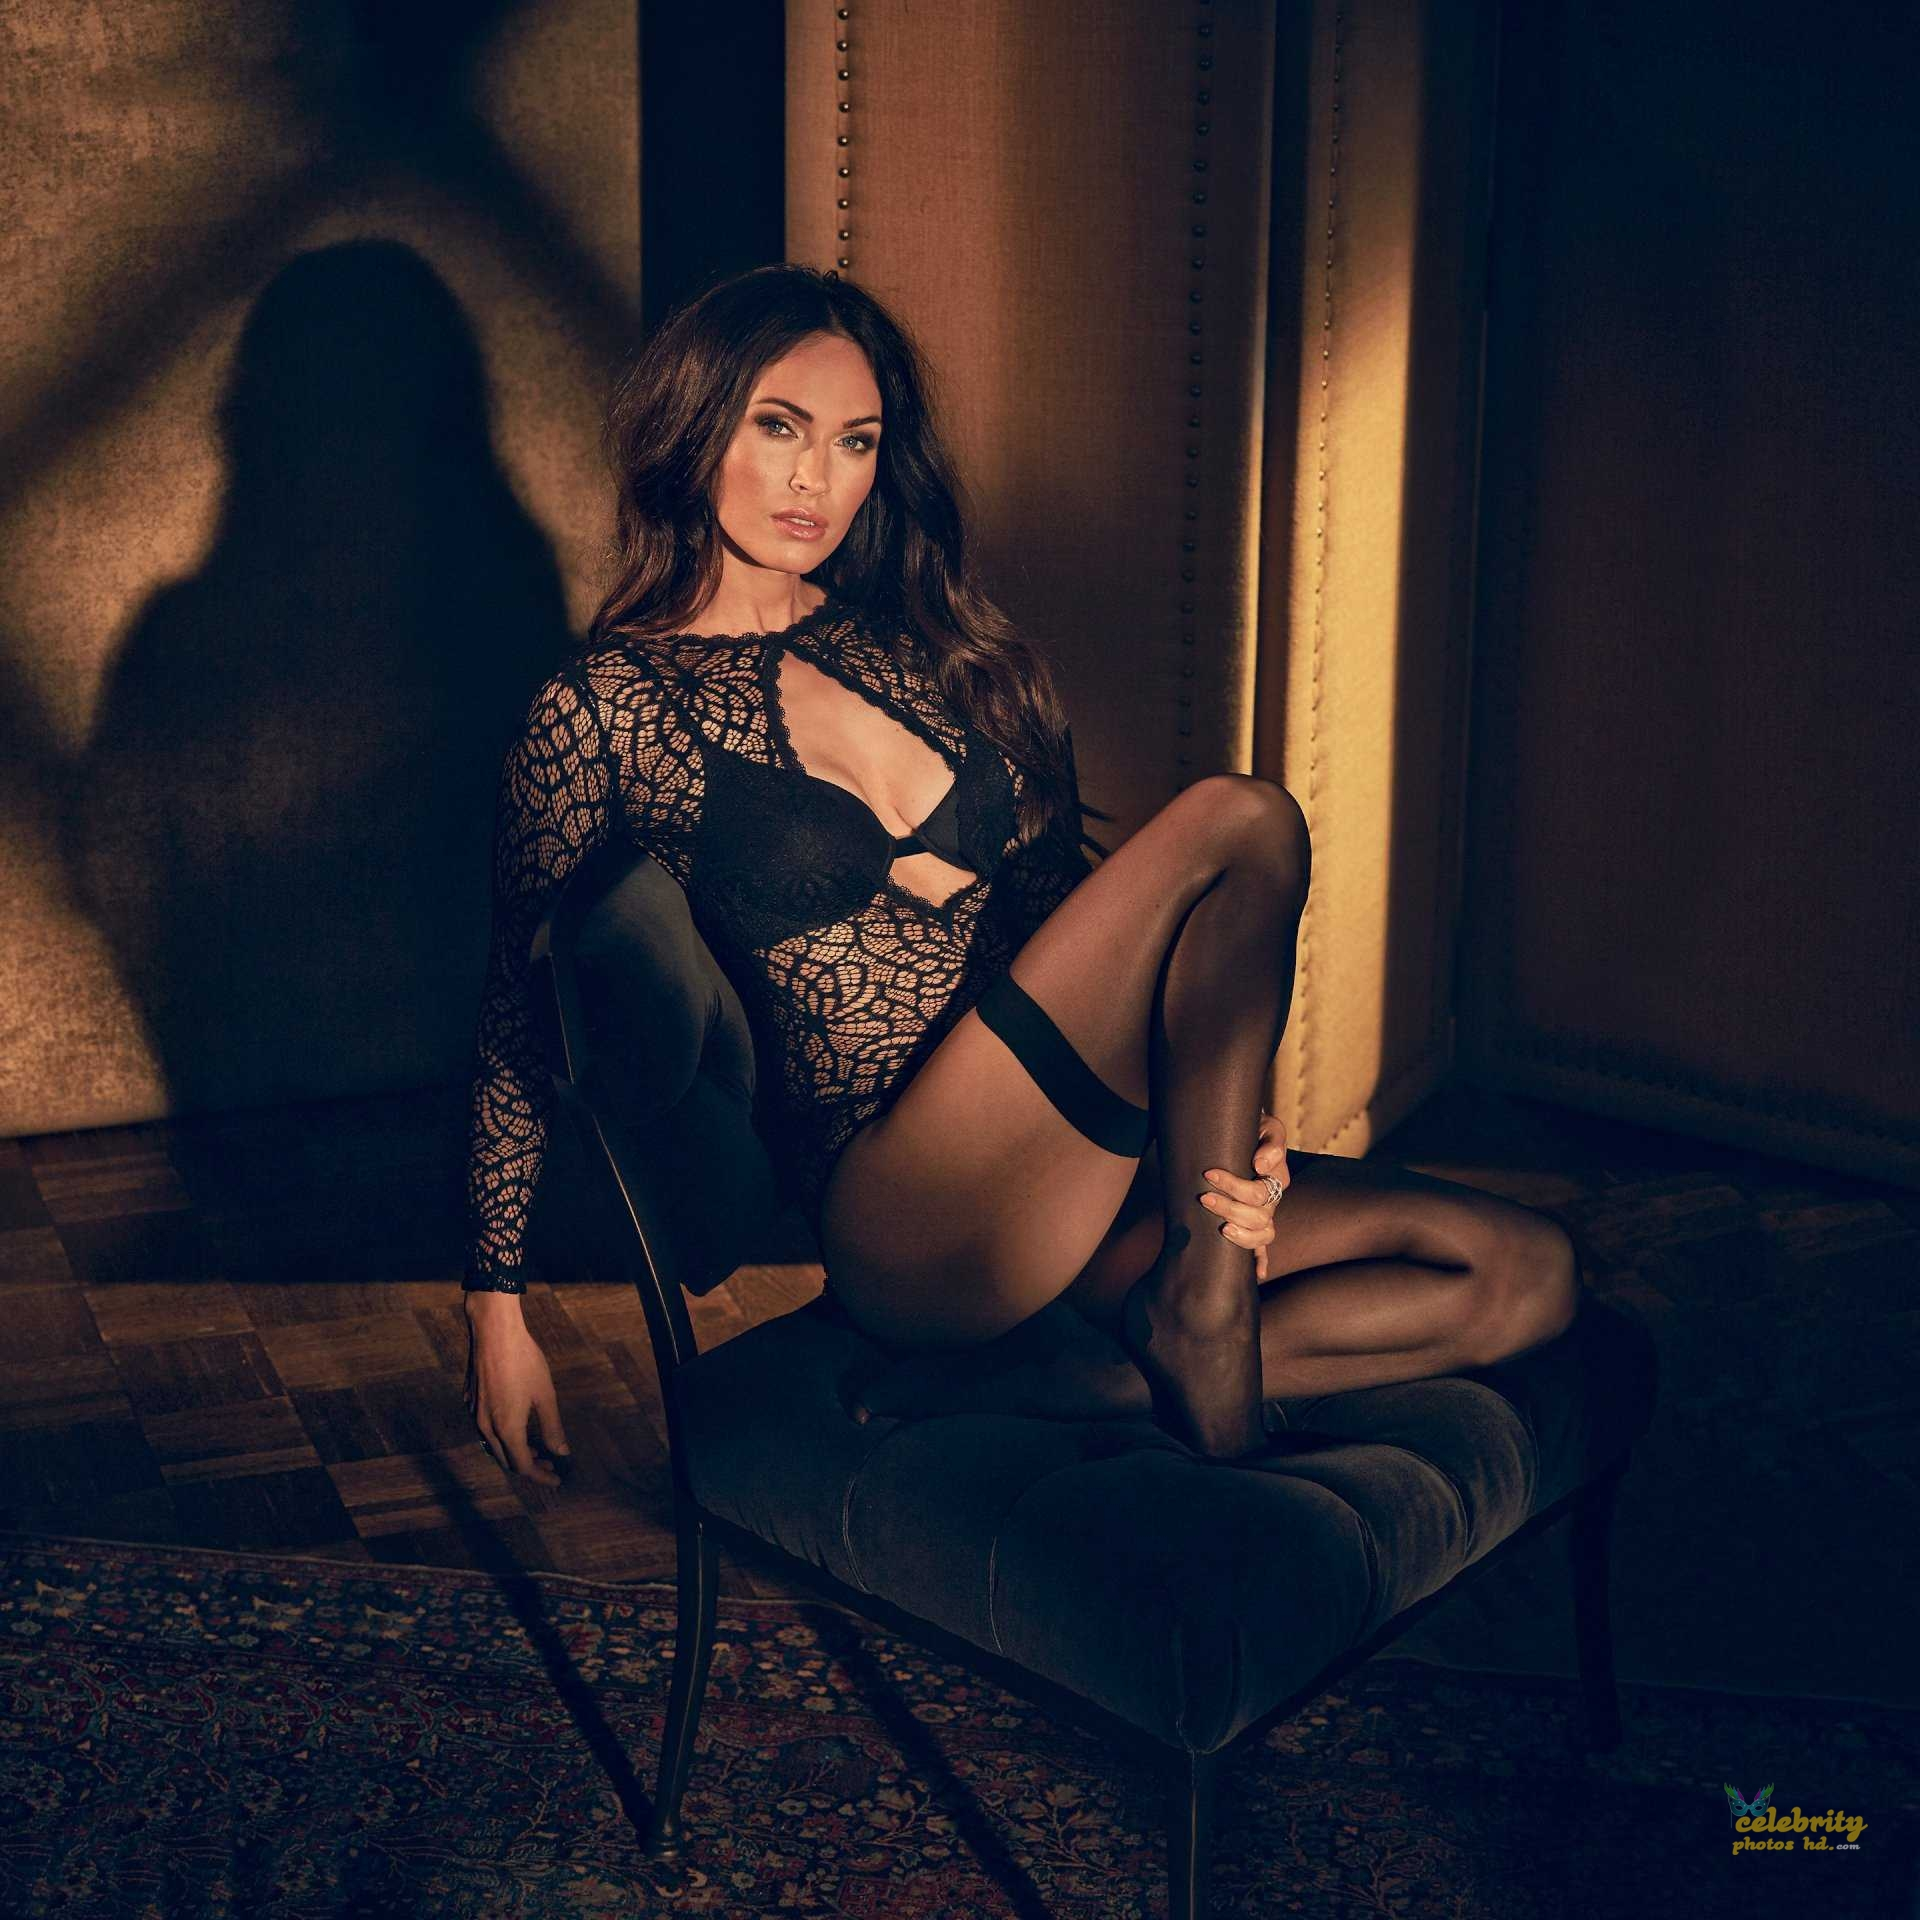 Megan Fox in Fredericks's of Hollywood Lingerie Photoshoot (6)